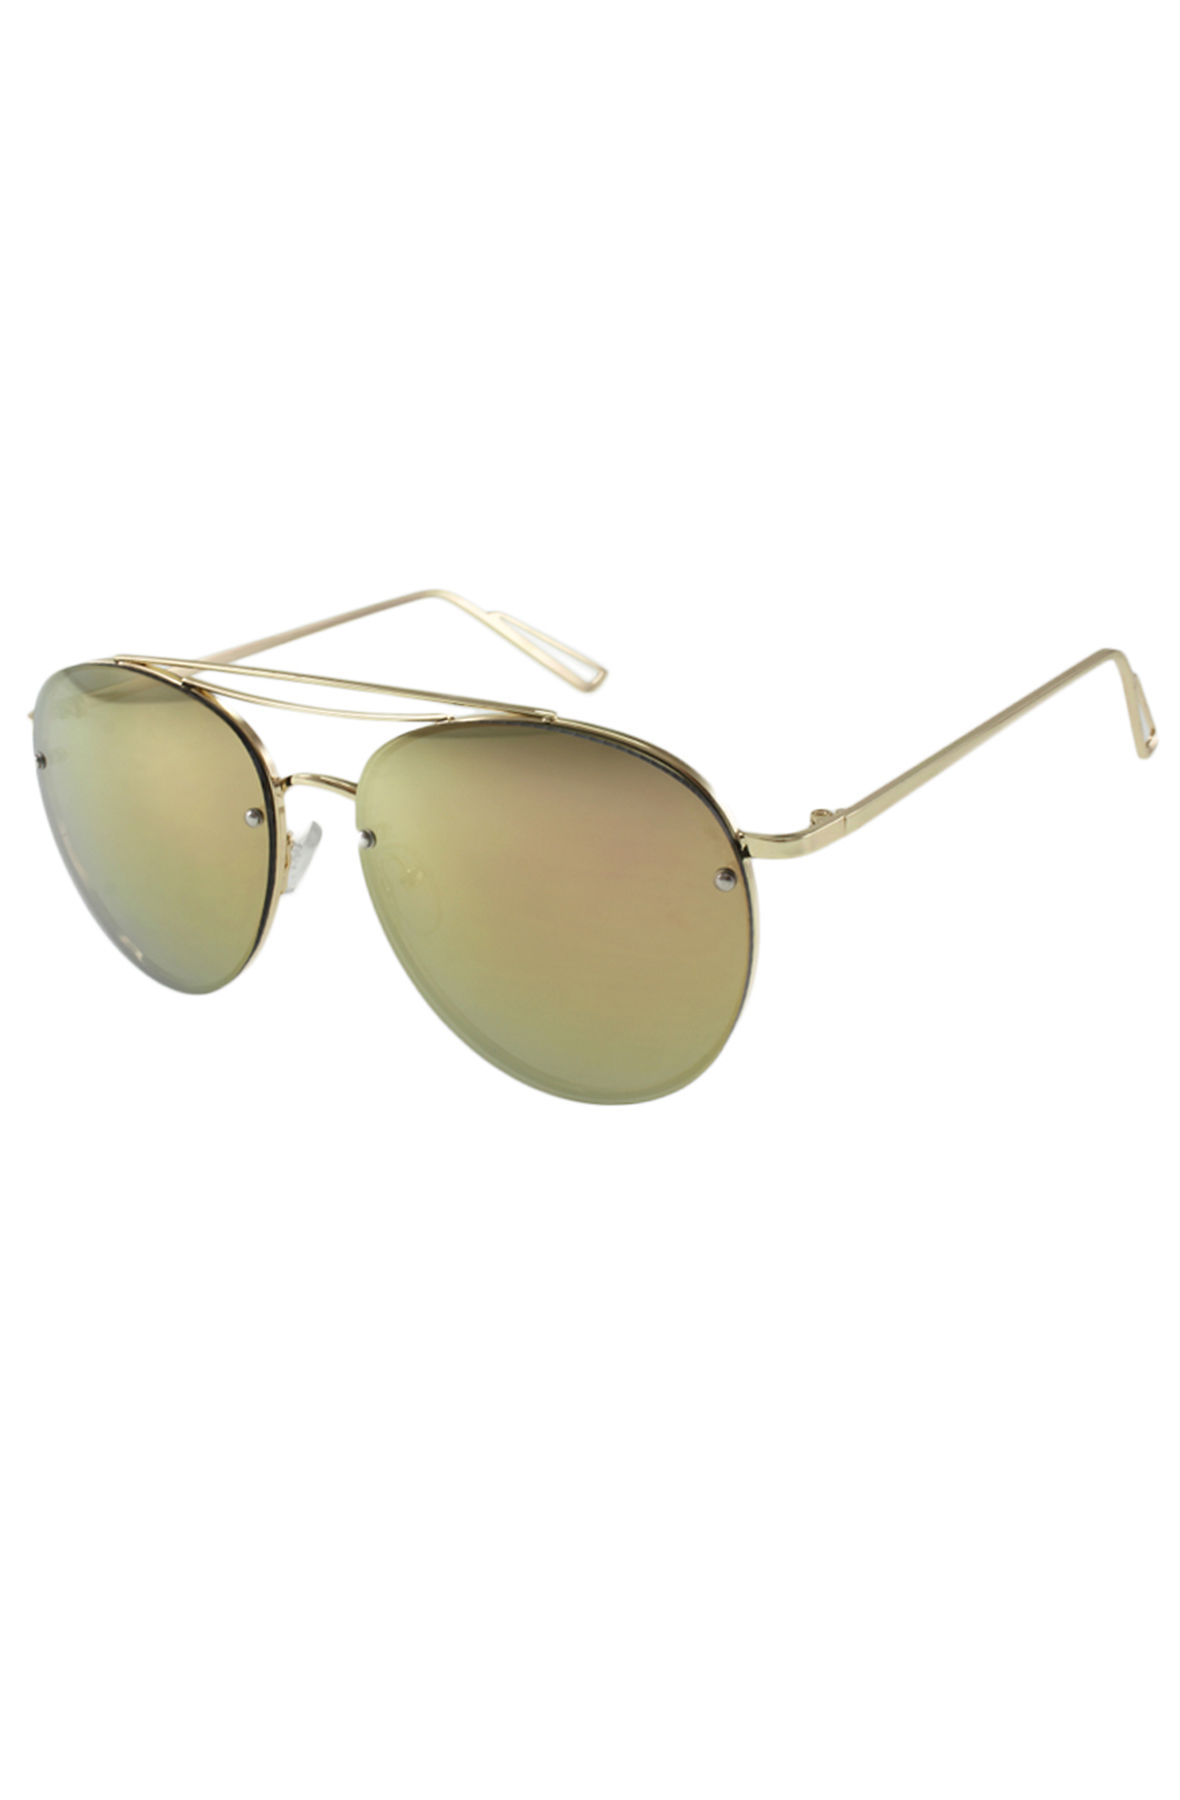 Image of The Biscayne Sunglasses in Pink Mirror